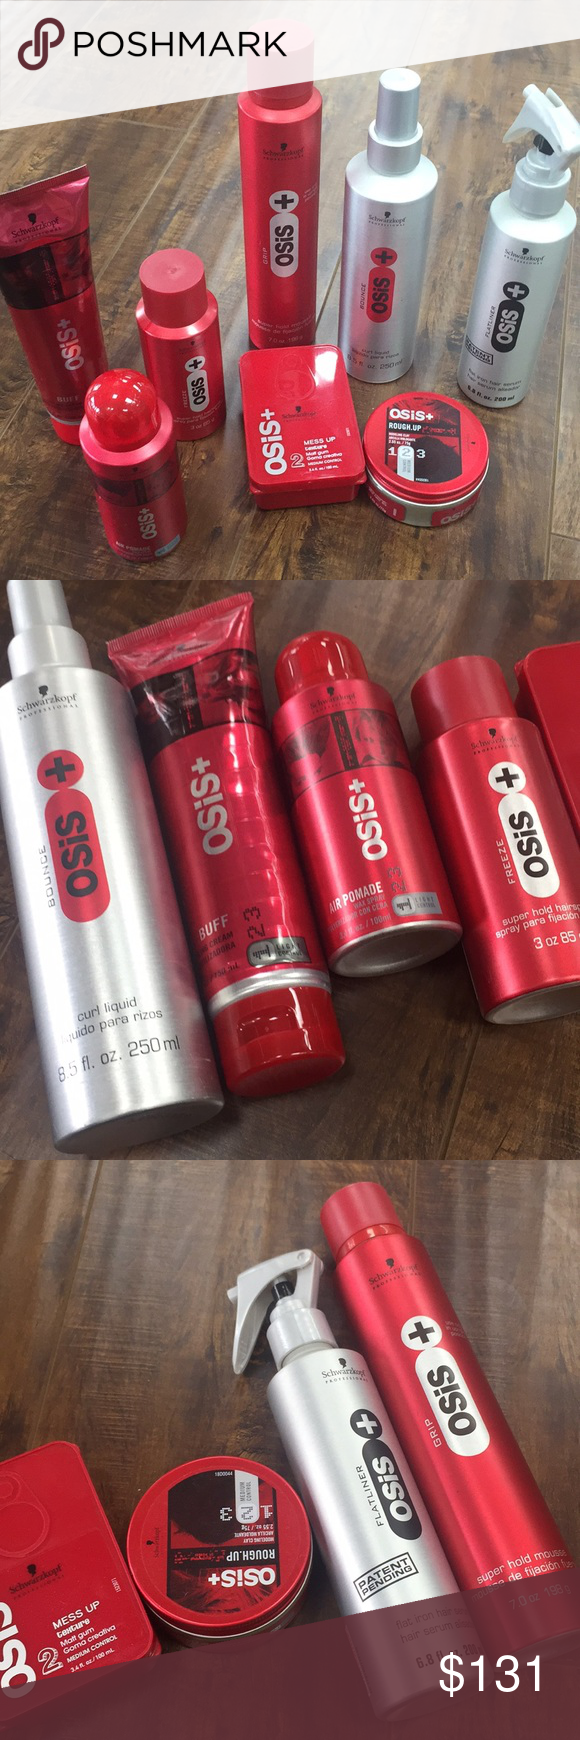 Schwartzkop Osis Bundle all items are brand New authentic never opened including Styling Cream,Mousse,wax spray ,super hold hair spray,texture matt gum, modeling clay, curl liquid,flat iron serum all products are New No lowballing thanks osis Other